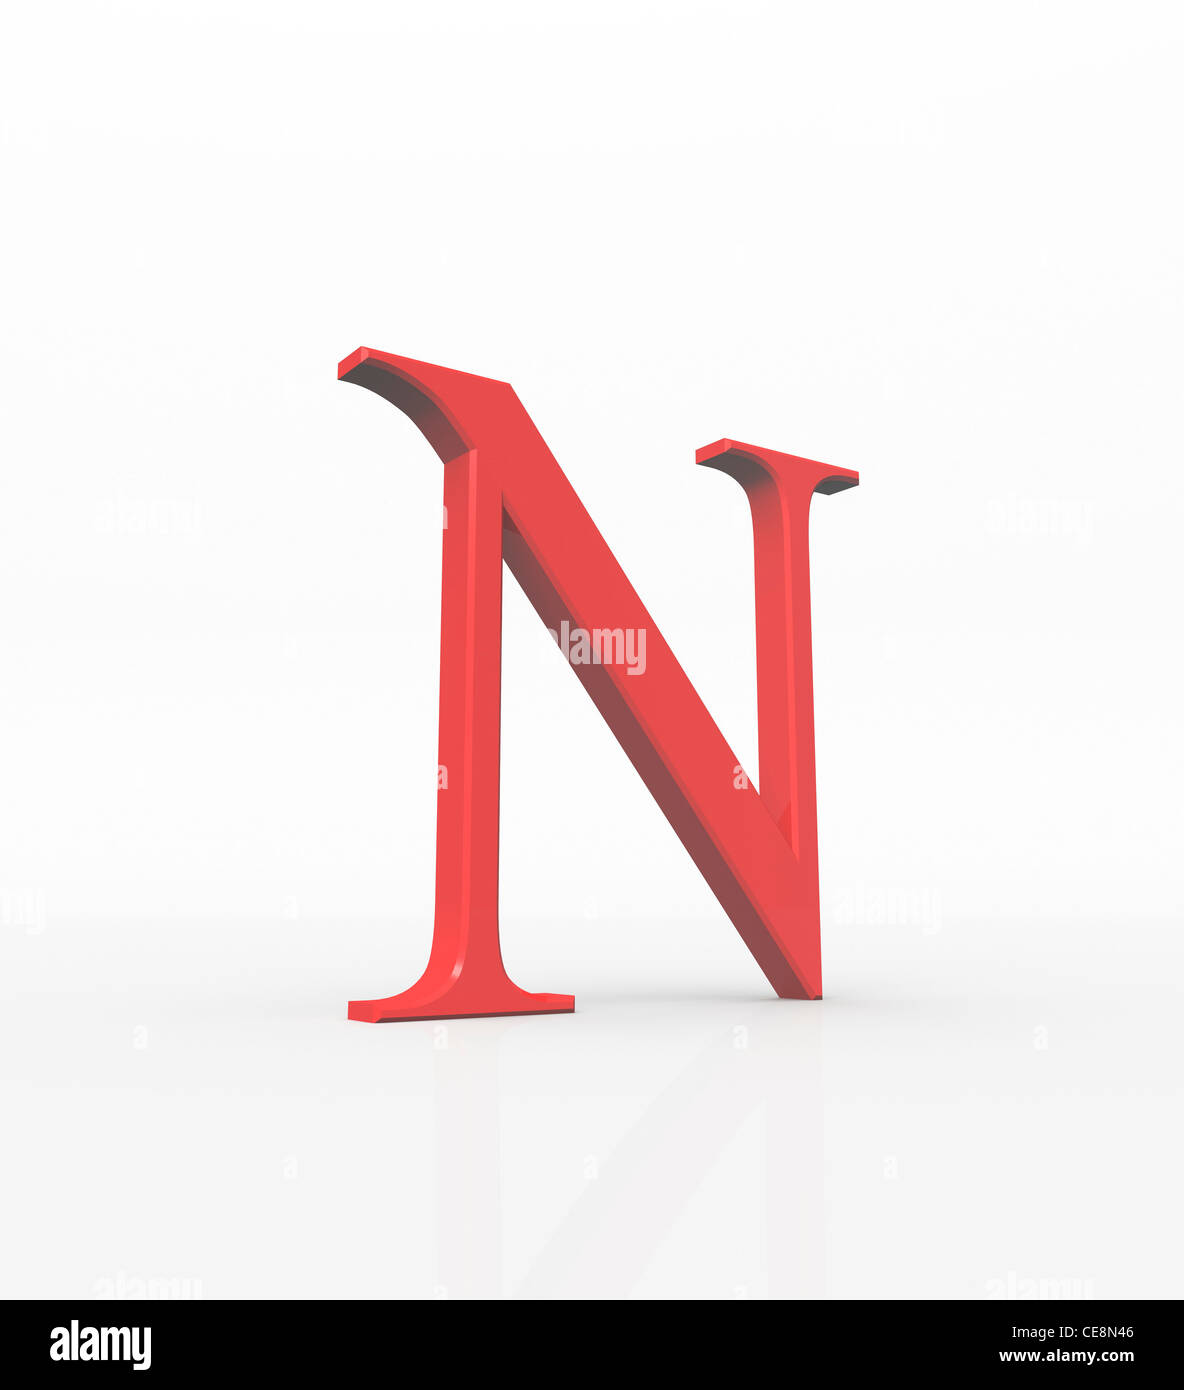 Nu 13th letter Greek alphabet In system Greek numerals it value 50 lower-case letter used symbol in statistics mathematics